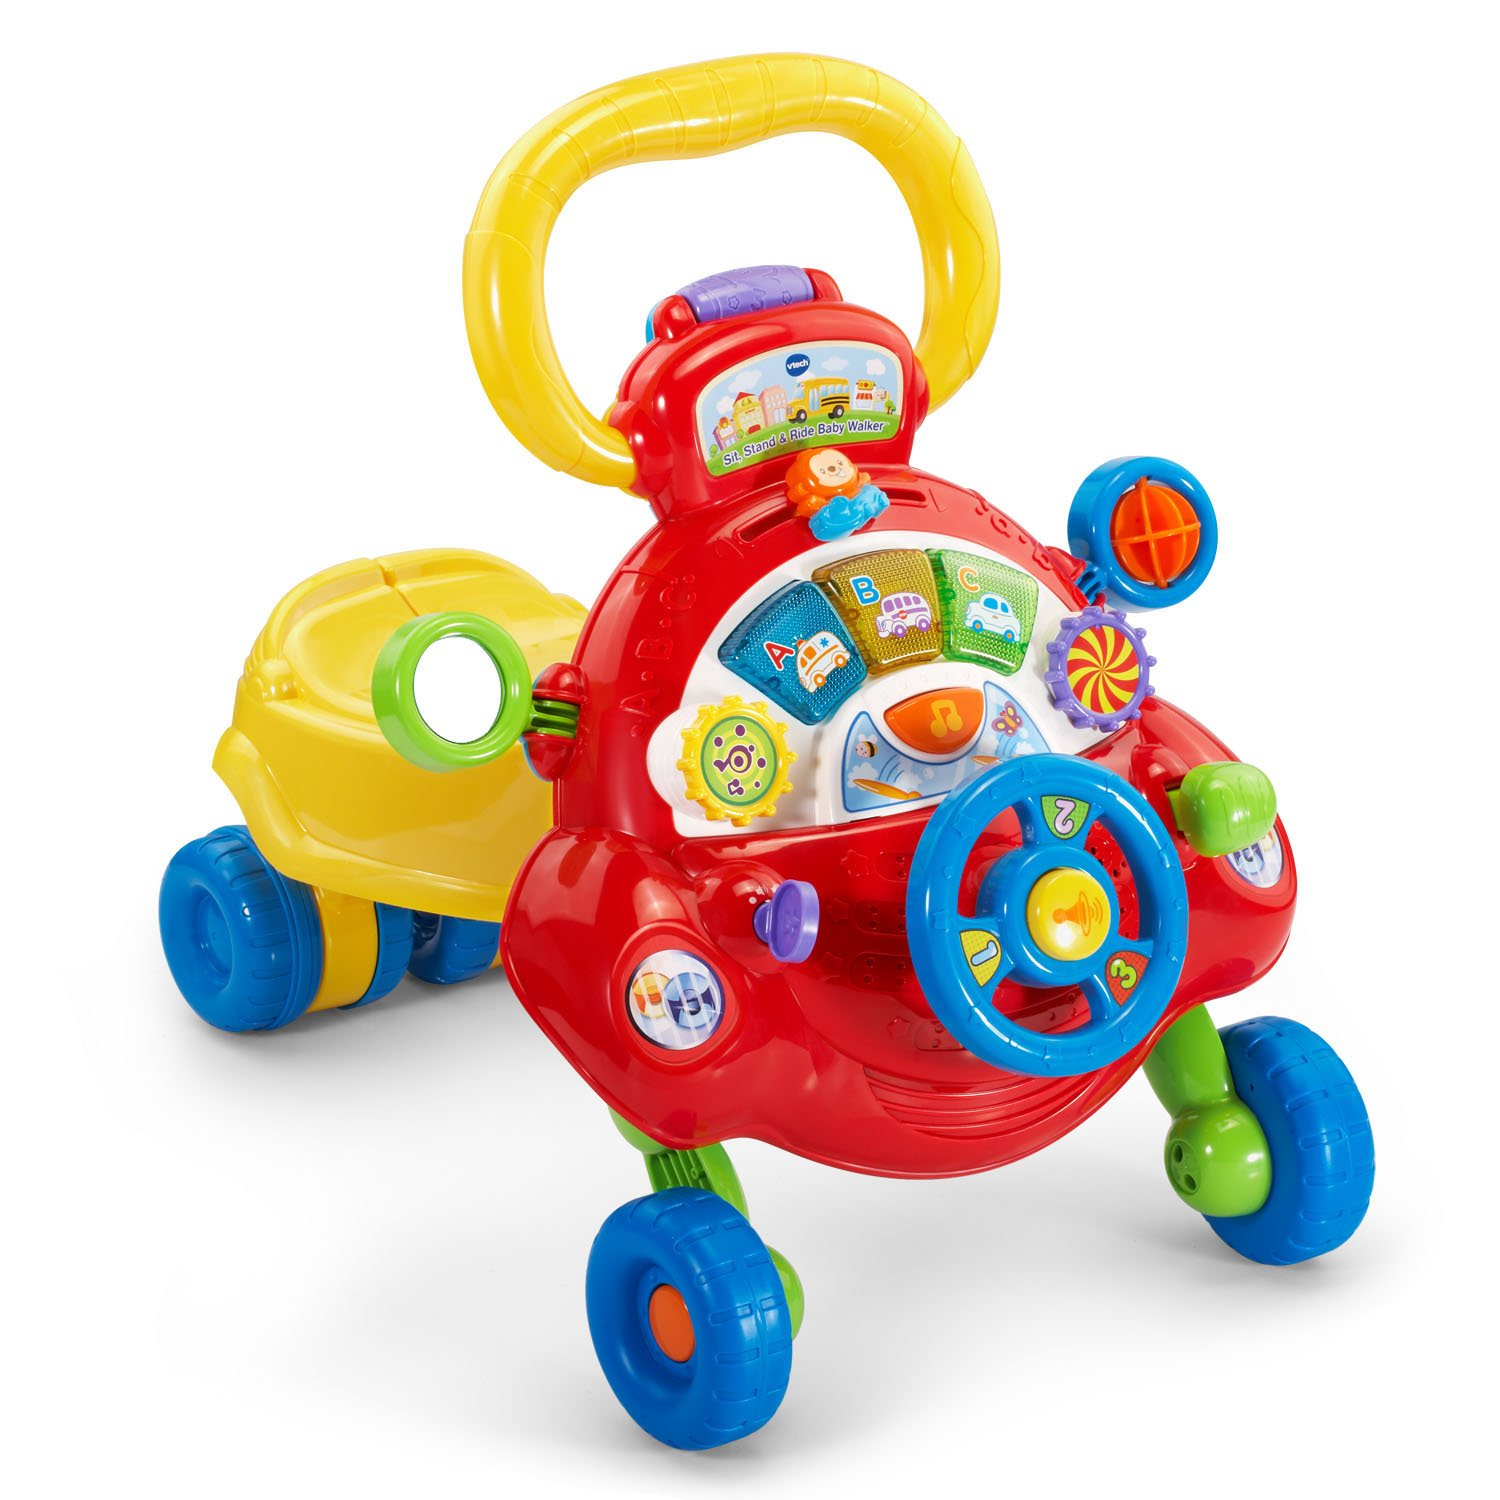 VTech Sit, Stand and Ride Baby Walker (Frustration Free Packaging) (Amazon Exclusive) by VTech (Image #12)